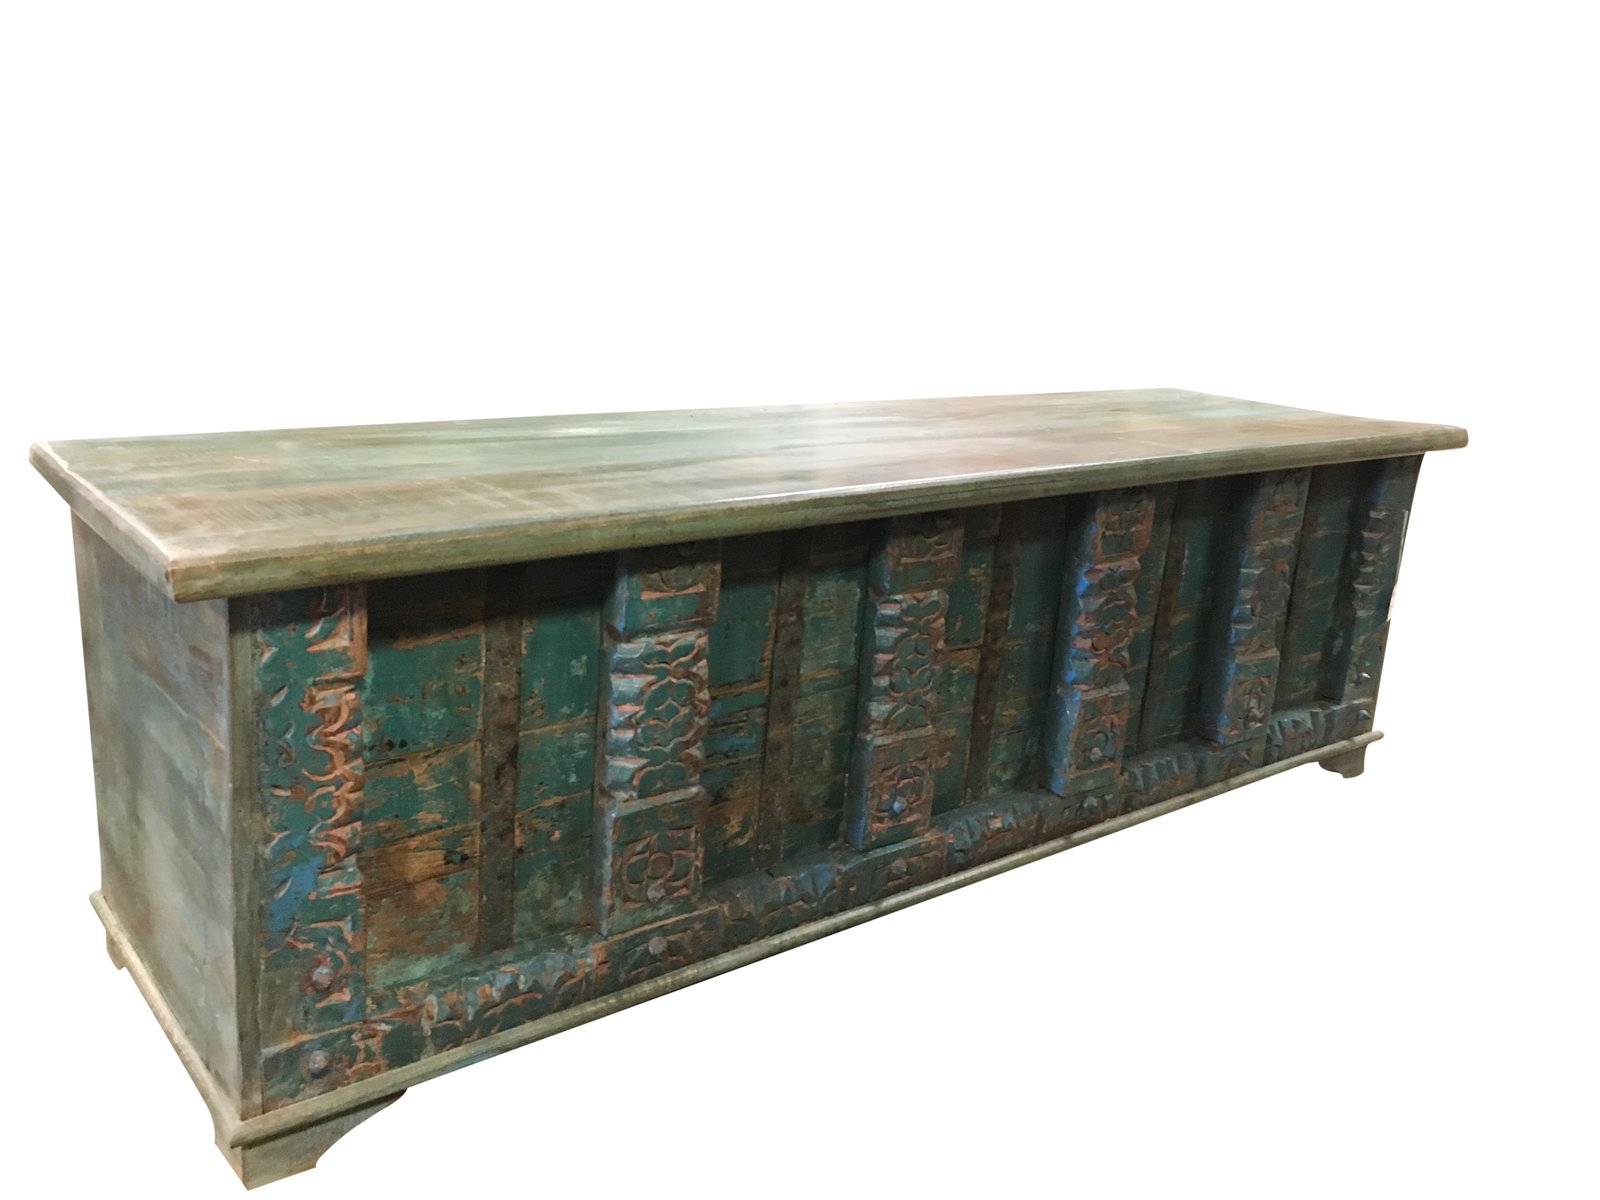 Vintage Trunk Blue Distressed Wood Window Bench Chai Table Iron latch Chest Old Pitara Bohemian Interior